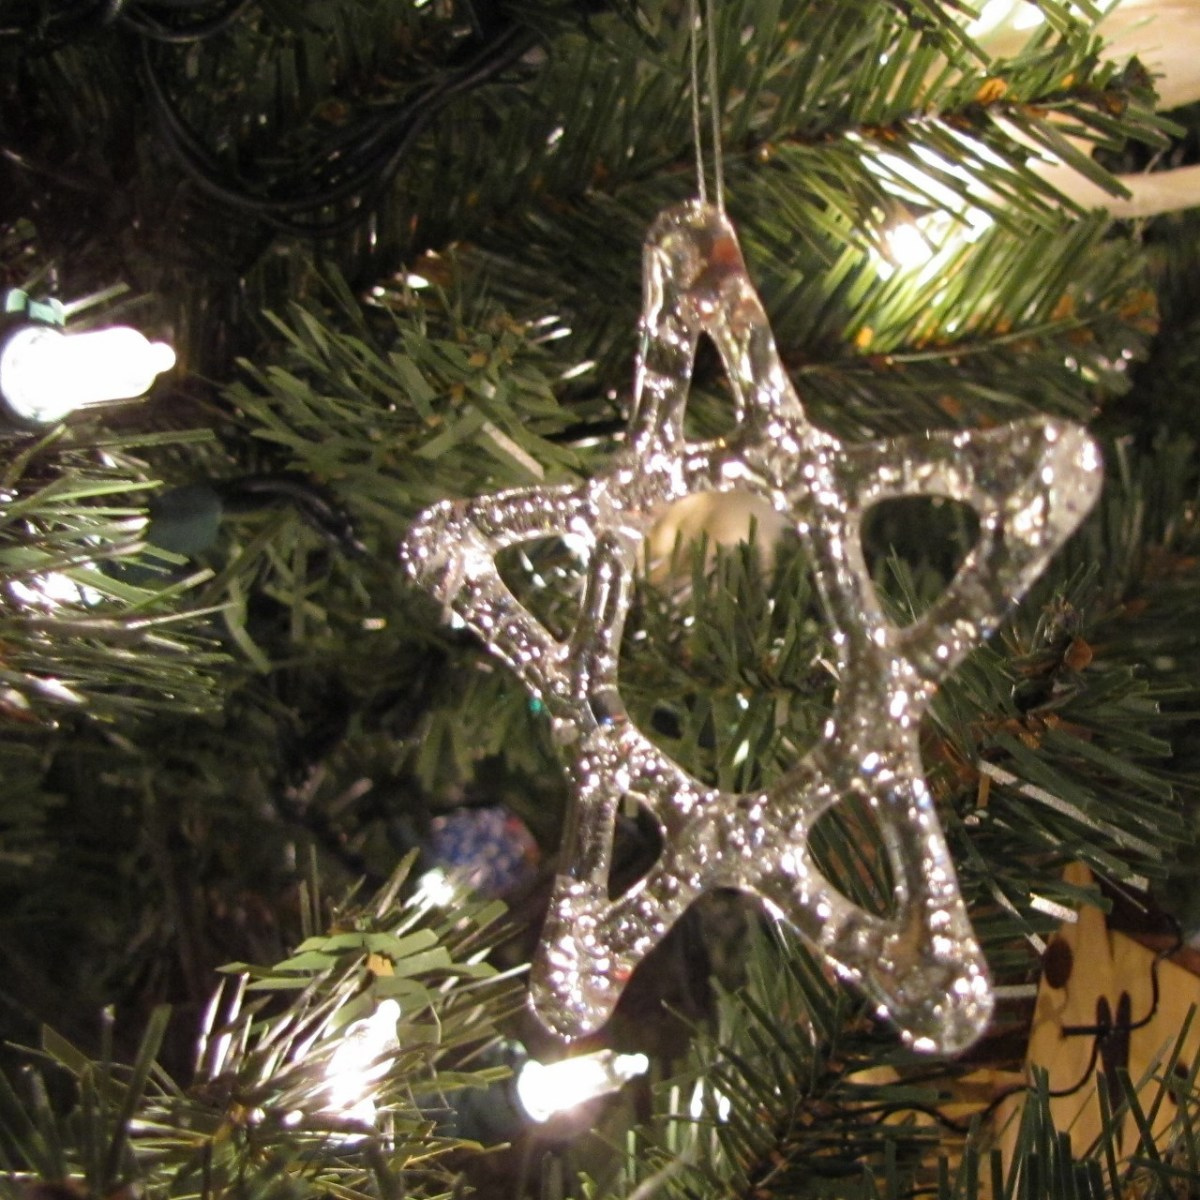 A Star of Glass Adds Sparkle to a Holiday Tree